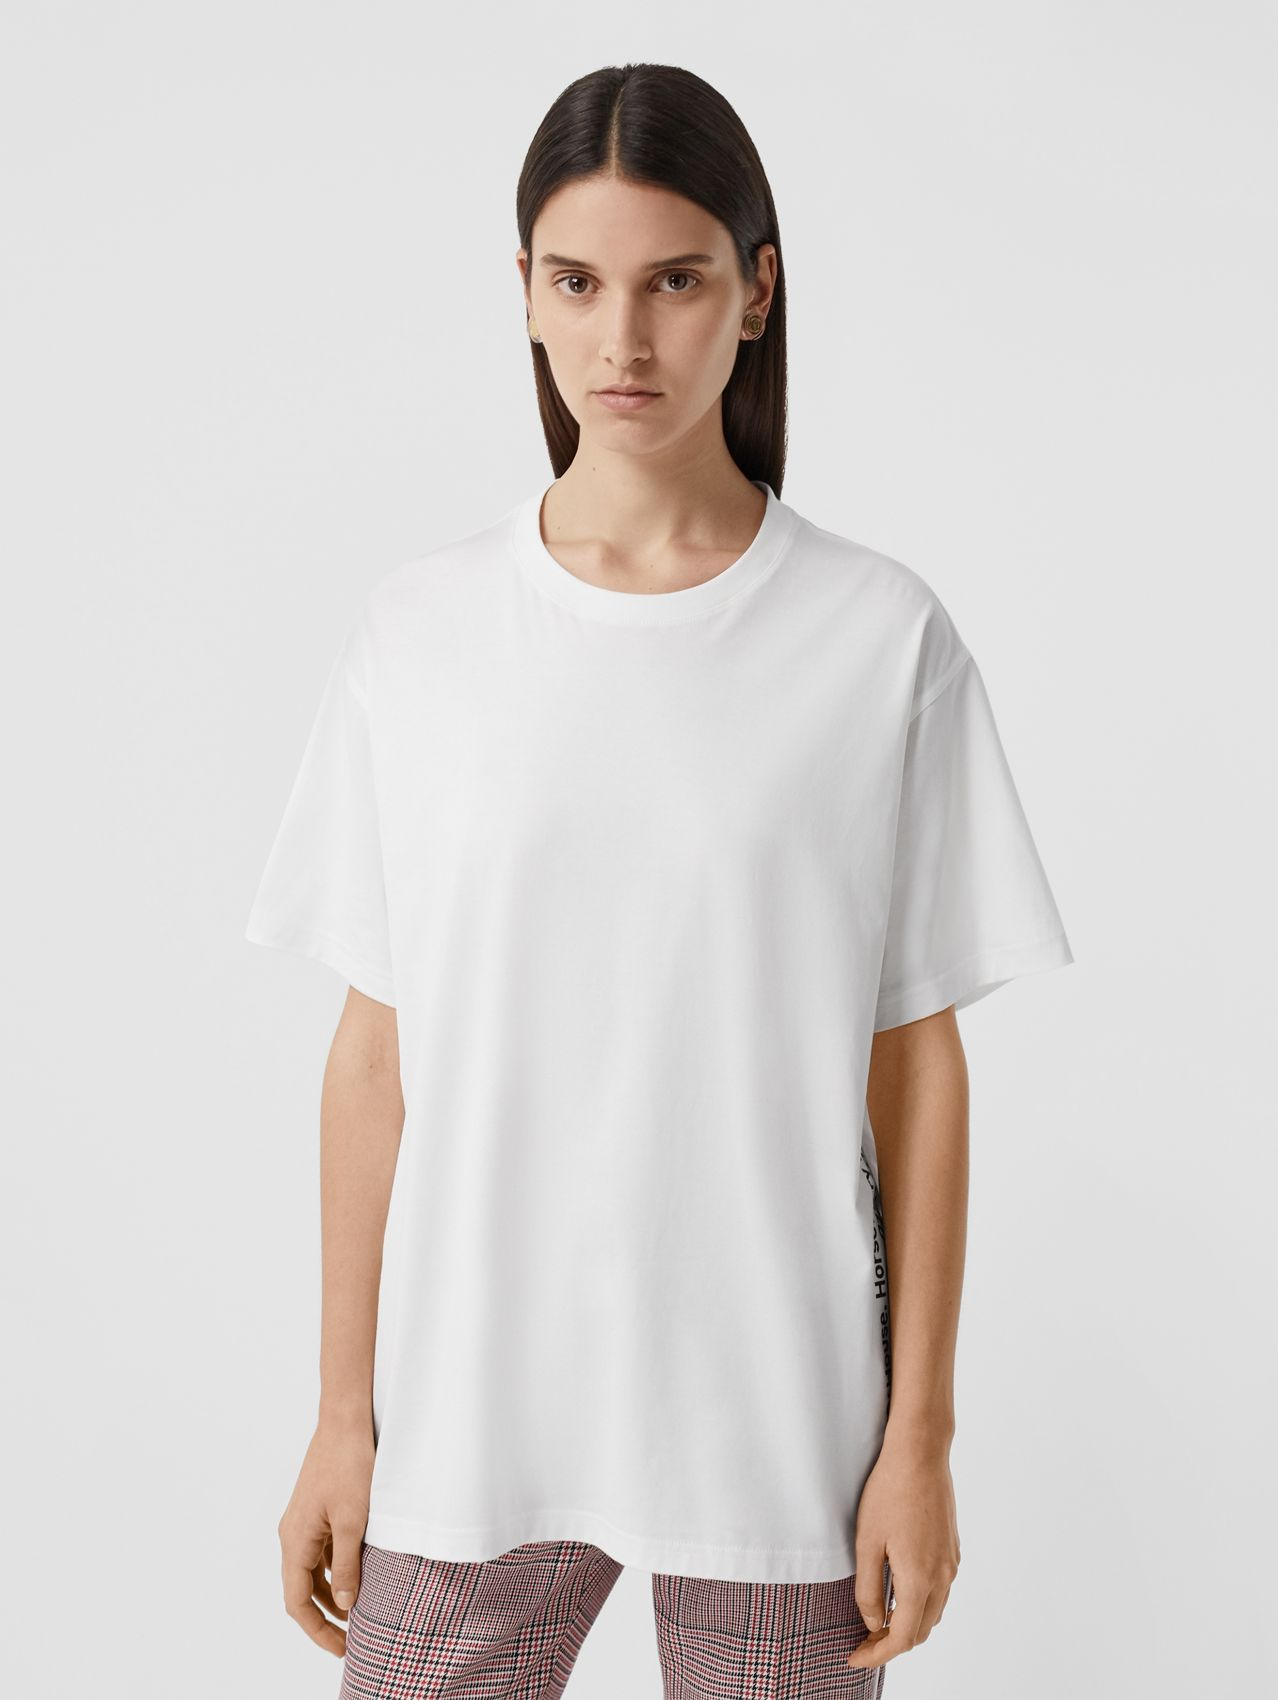 Coordinates Print Cotton Oversized T-shirt in White